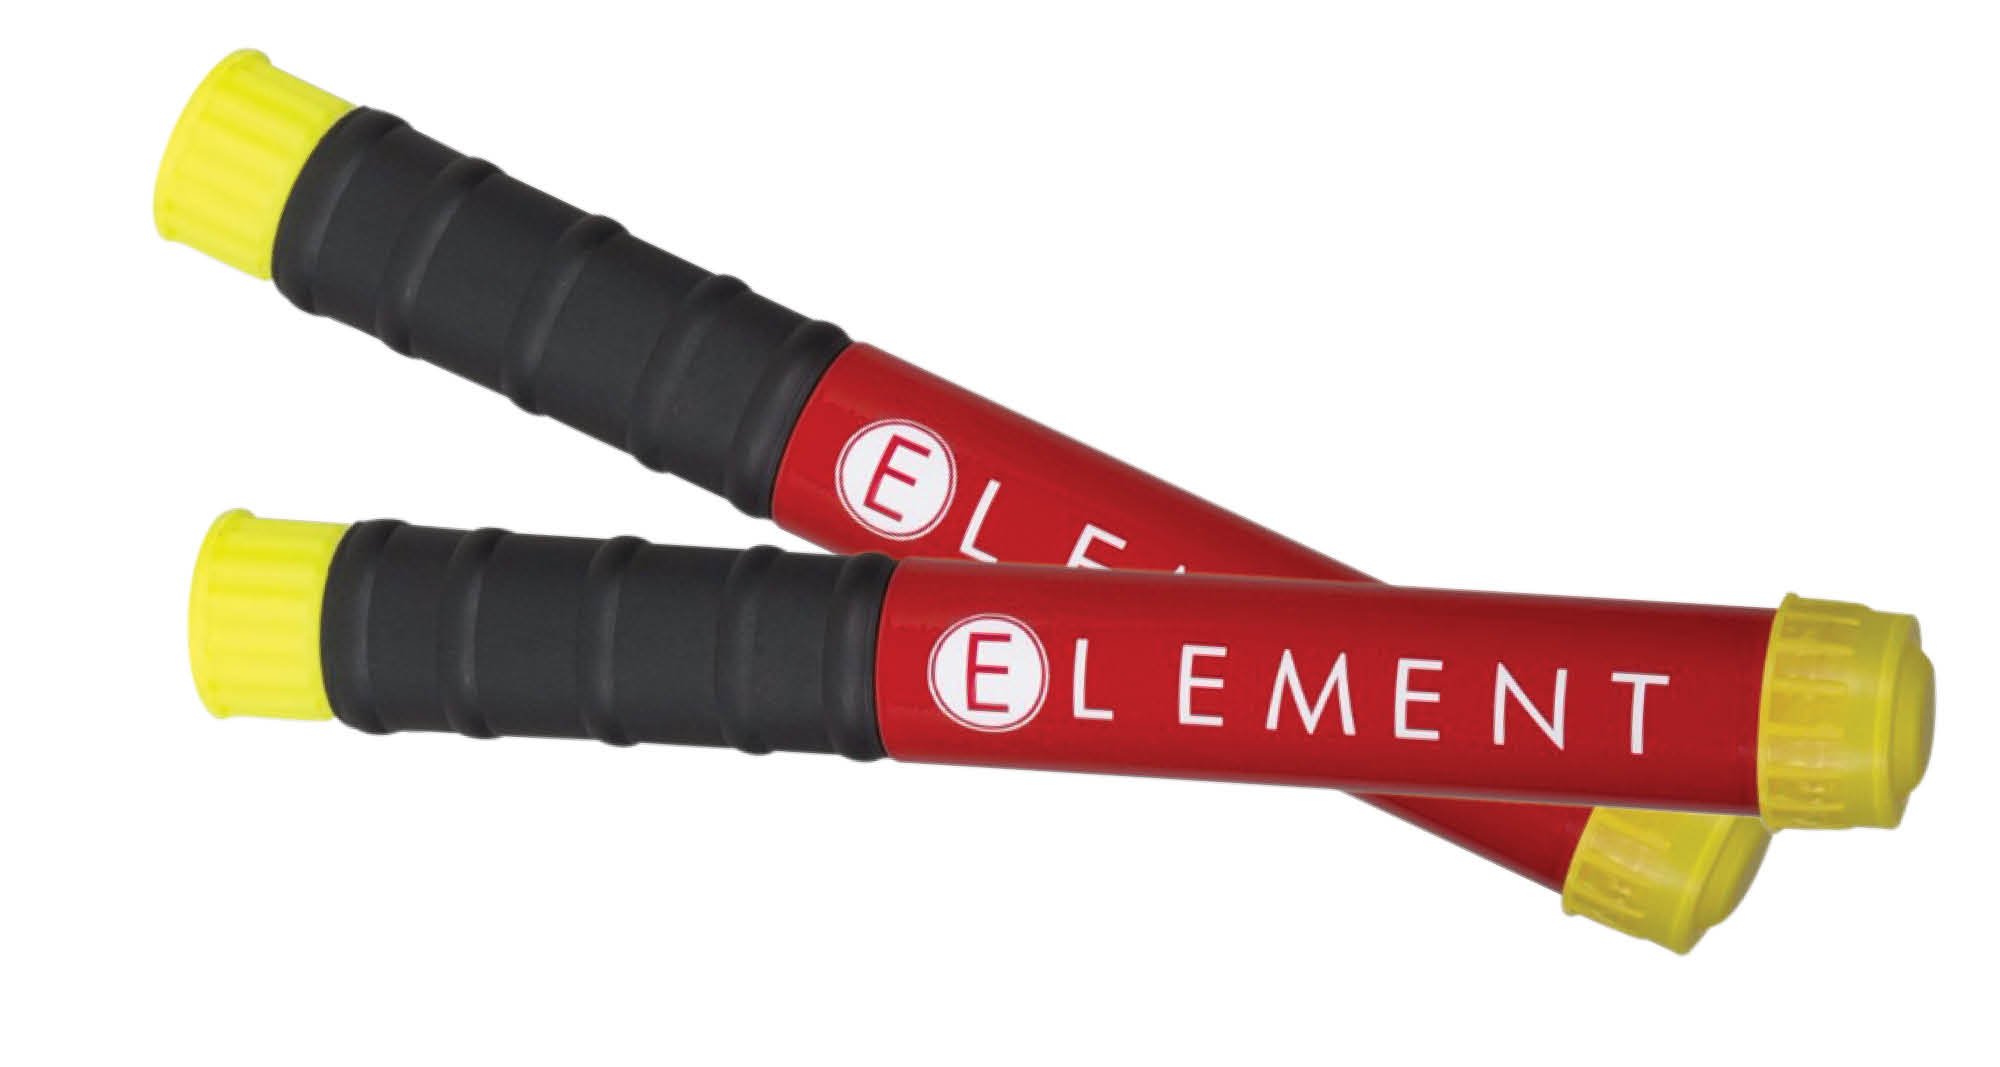 Element Fire Extinguisher Sticks